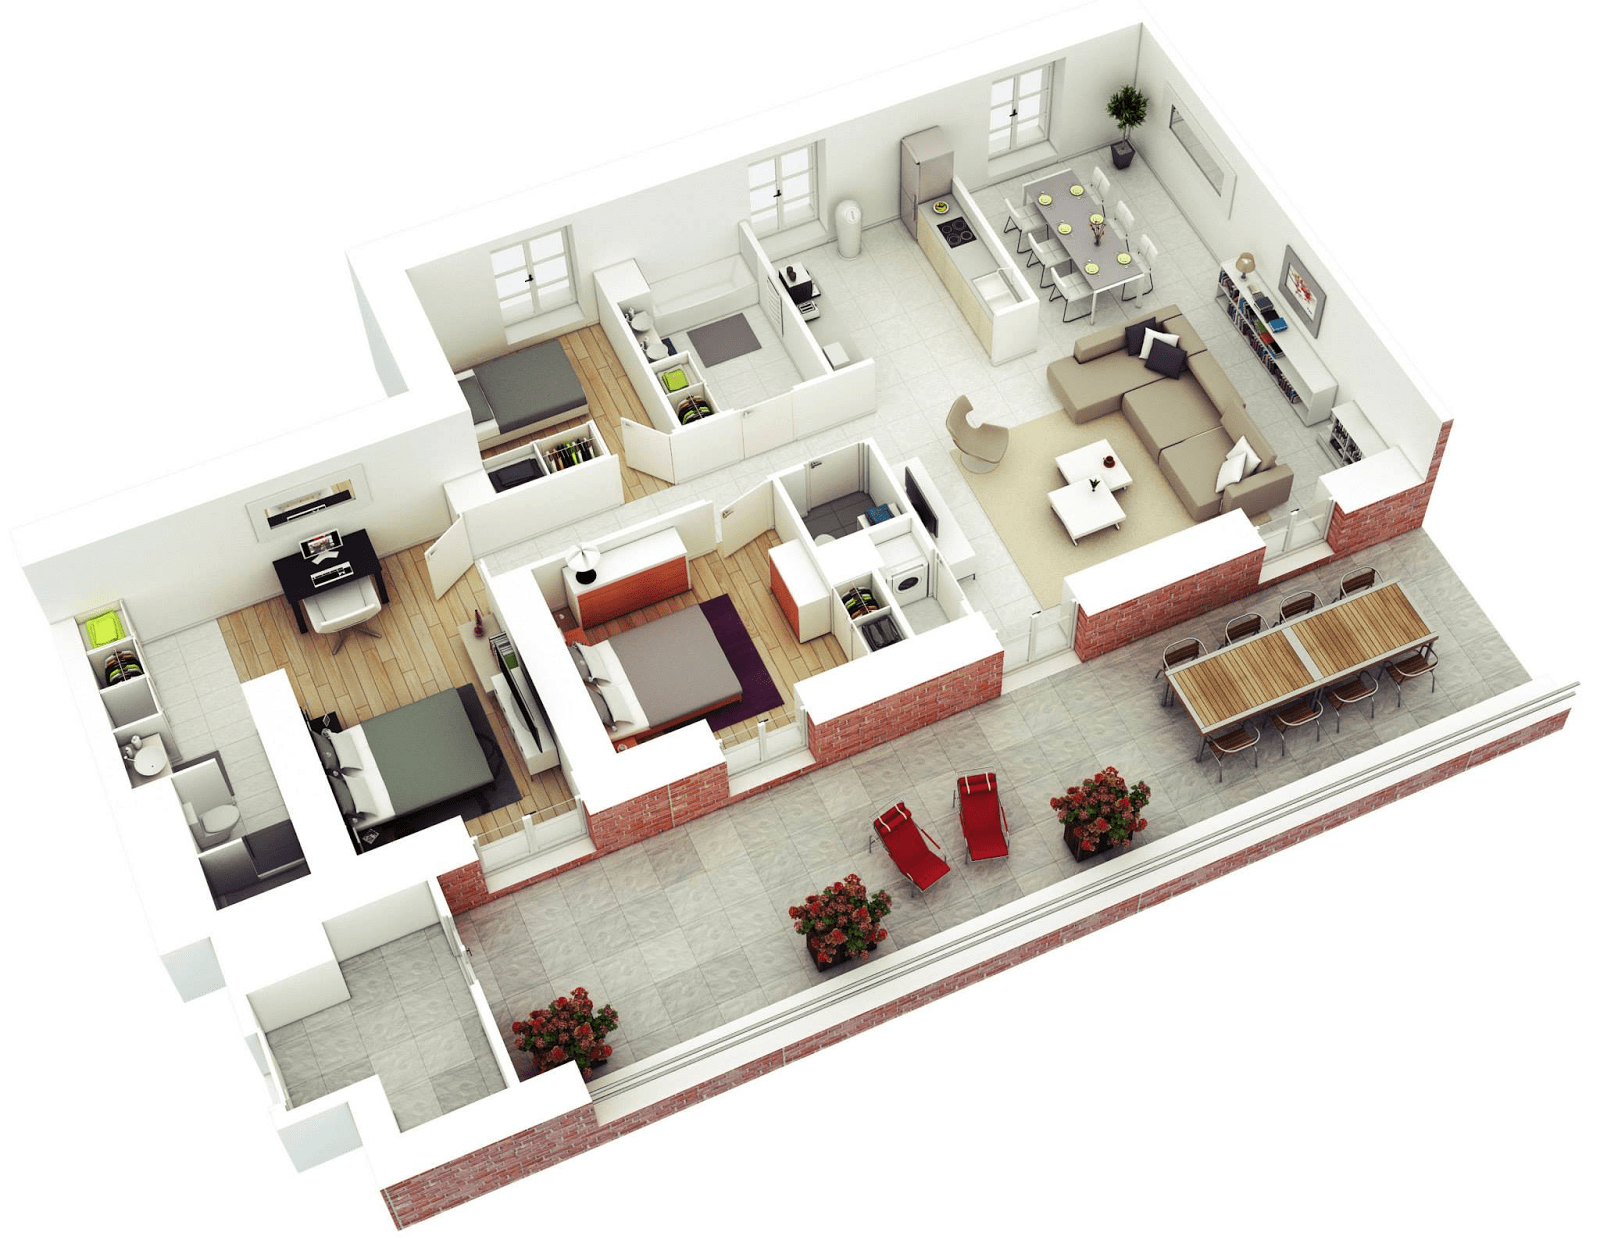 3d Layout House Floor Plans With 3 Bedroom And Backyard Patio (Image 6 of 11)